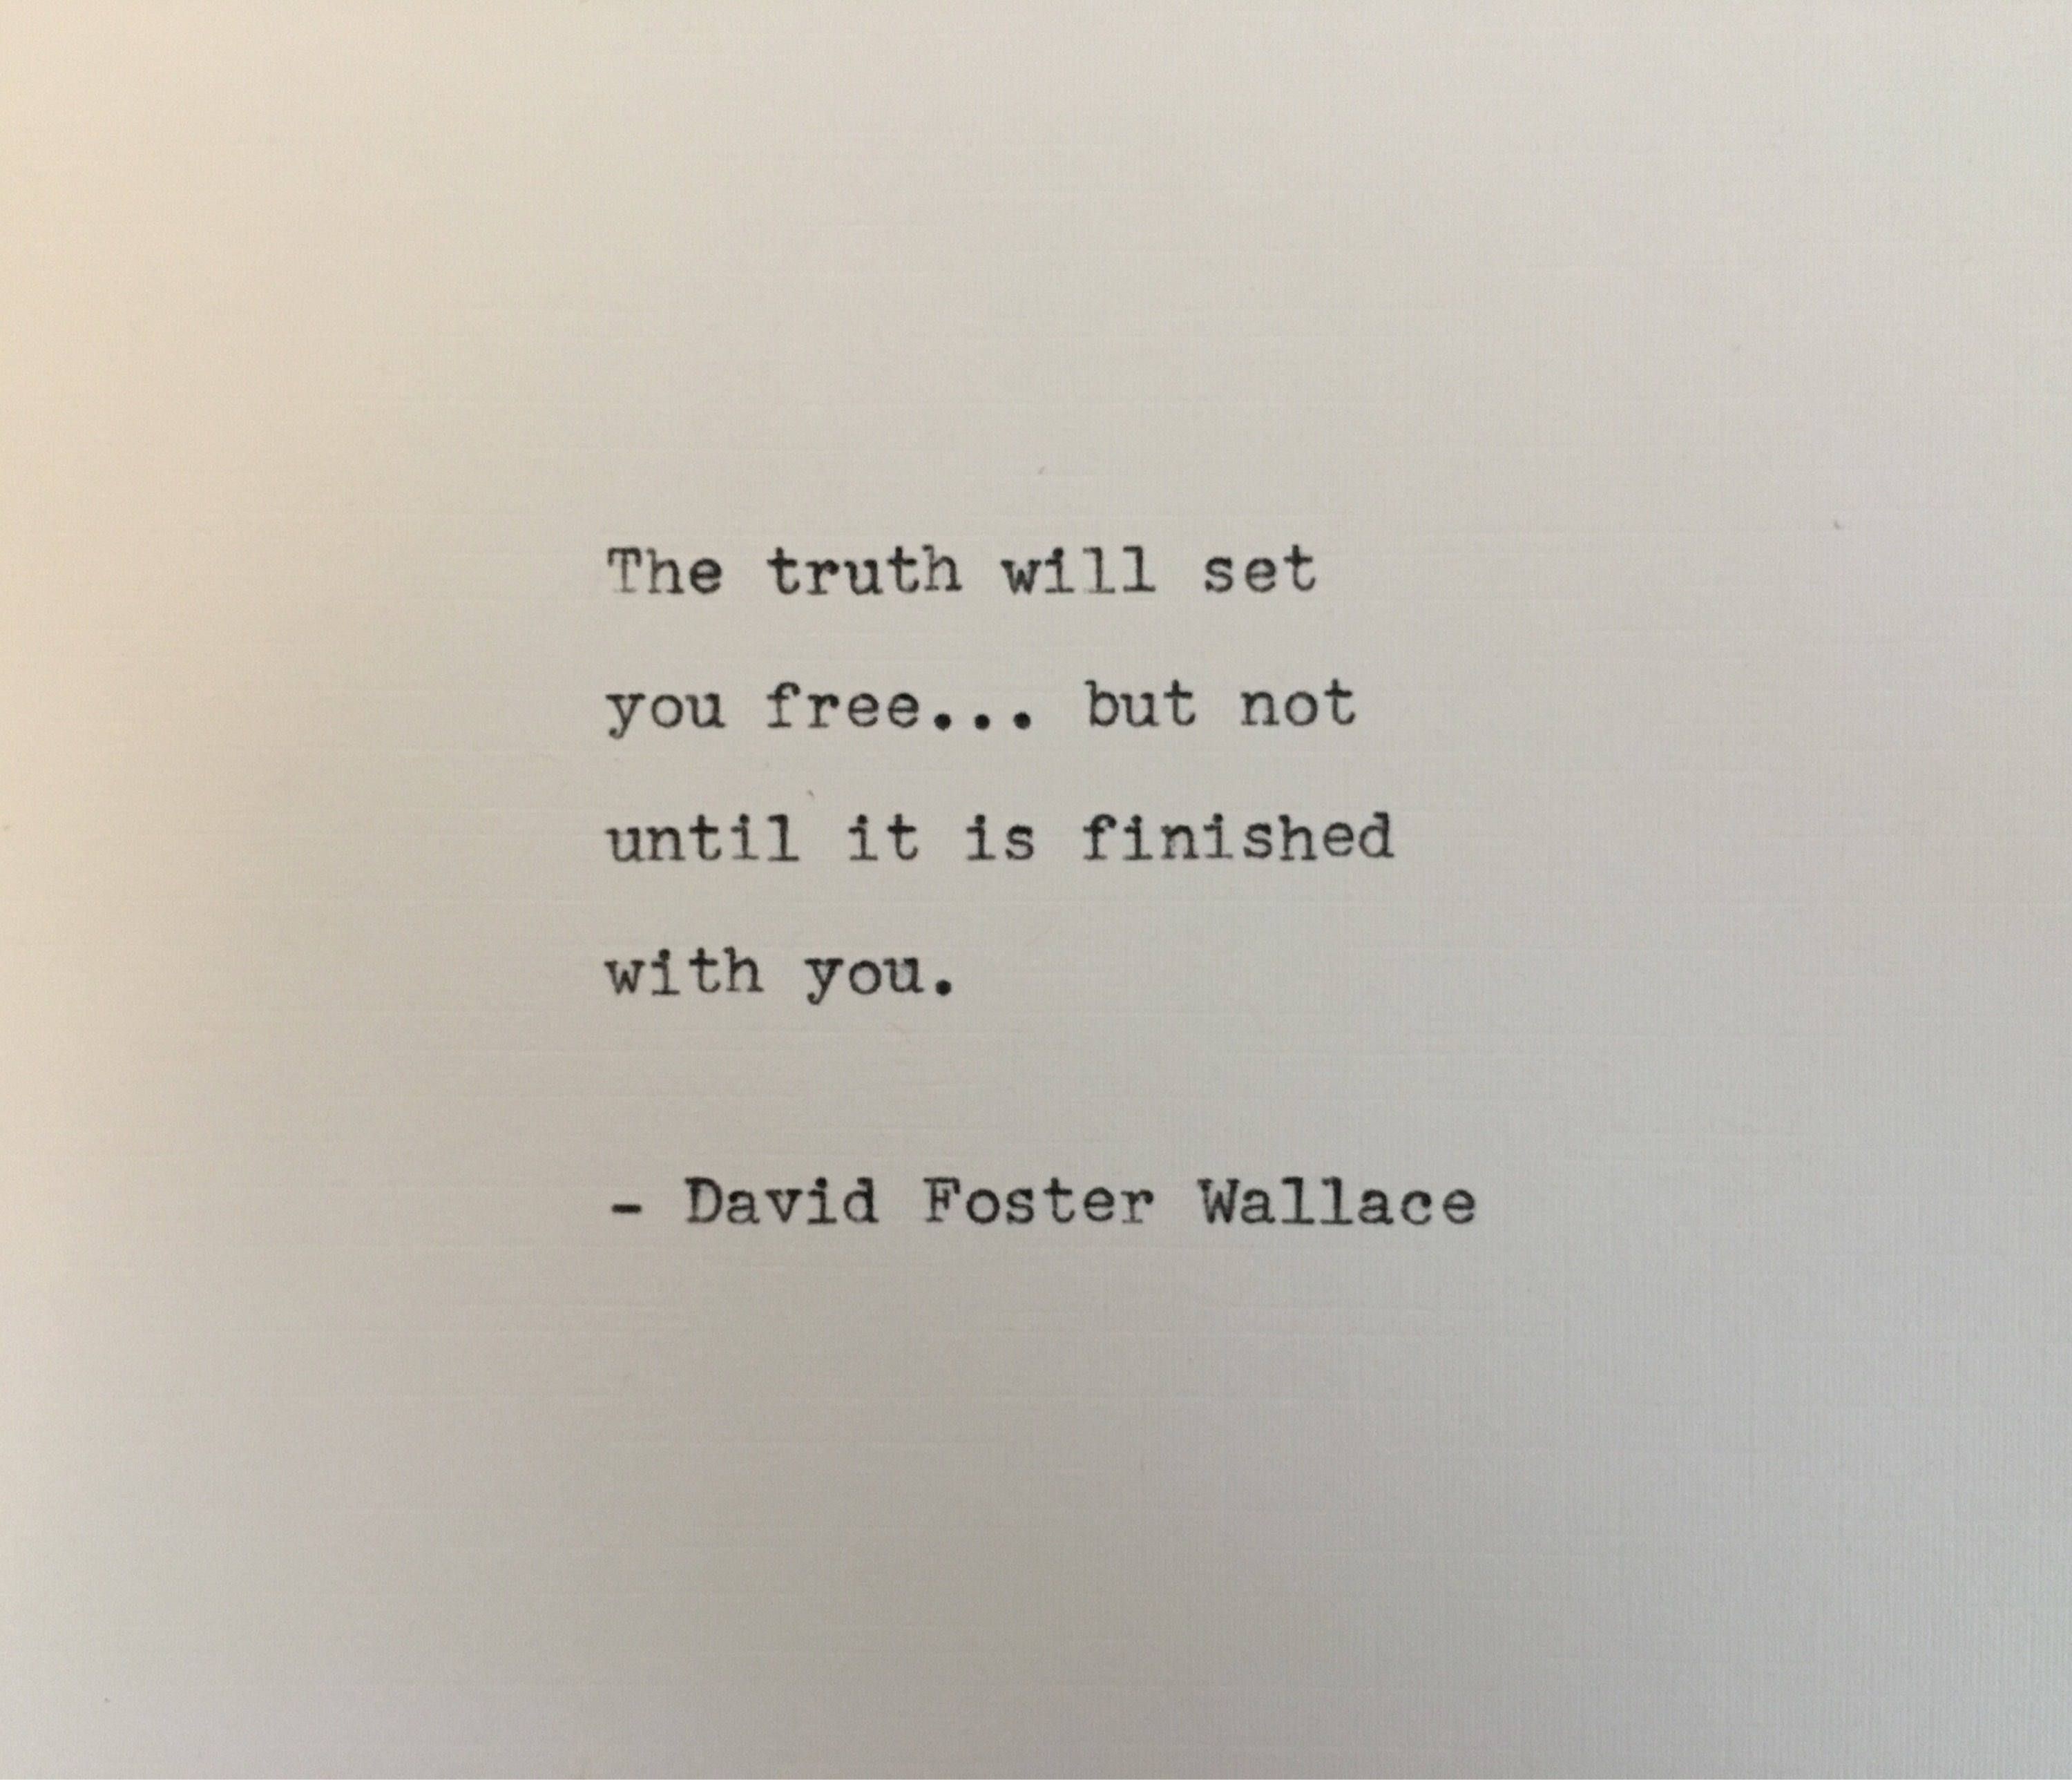 David Foster Wallace Quote Typed On Typewriter Unique Gift Without You Quotes David Foster Wallace Quotes David Foster Wallace